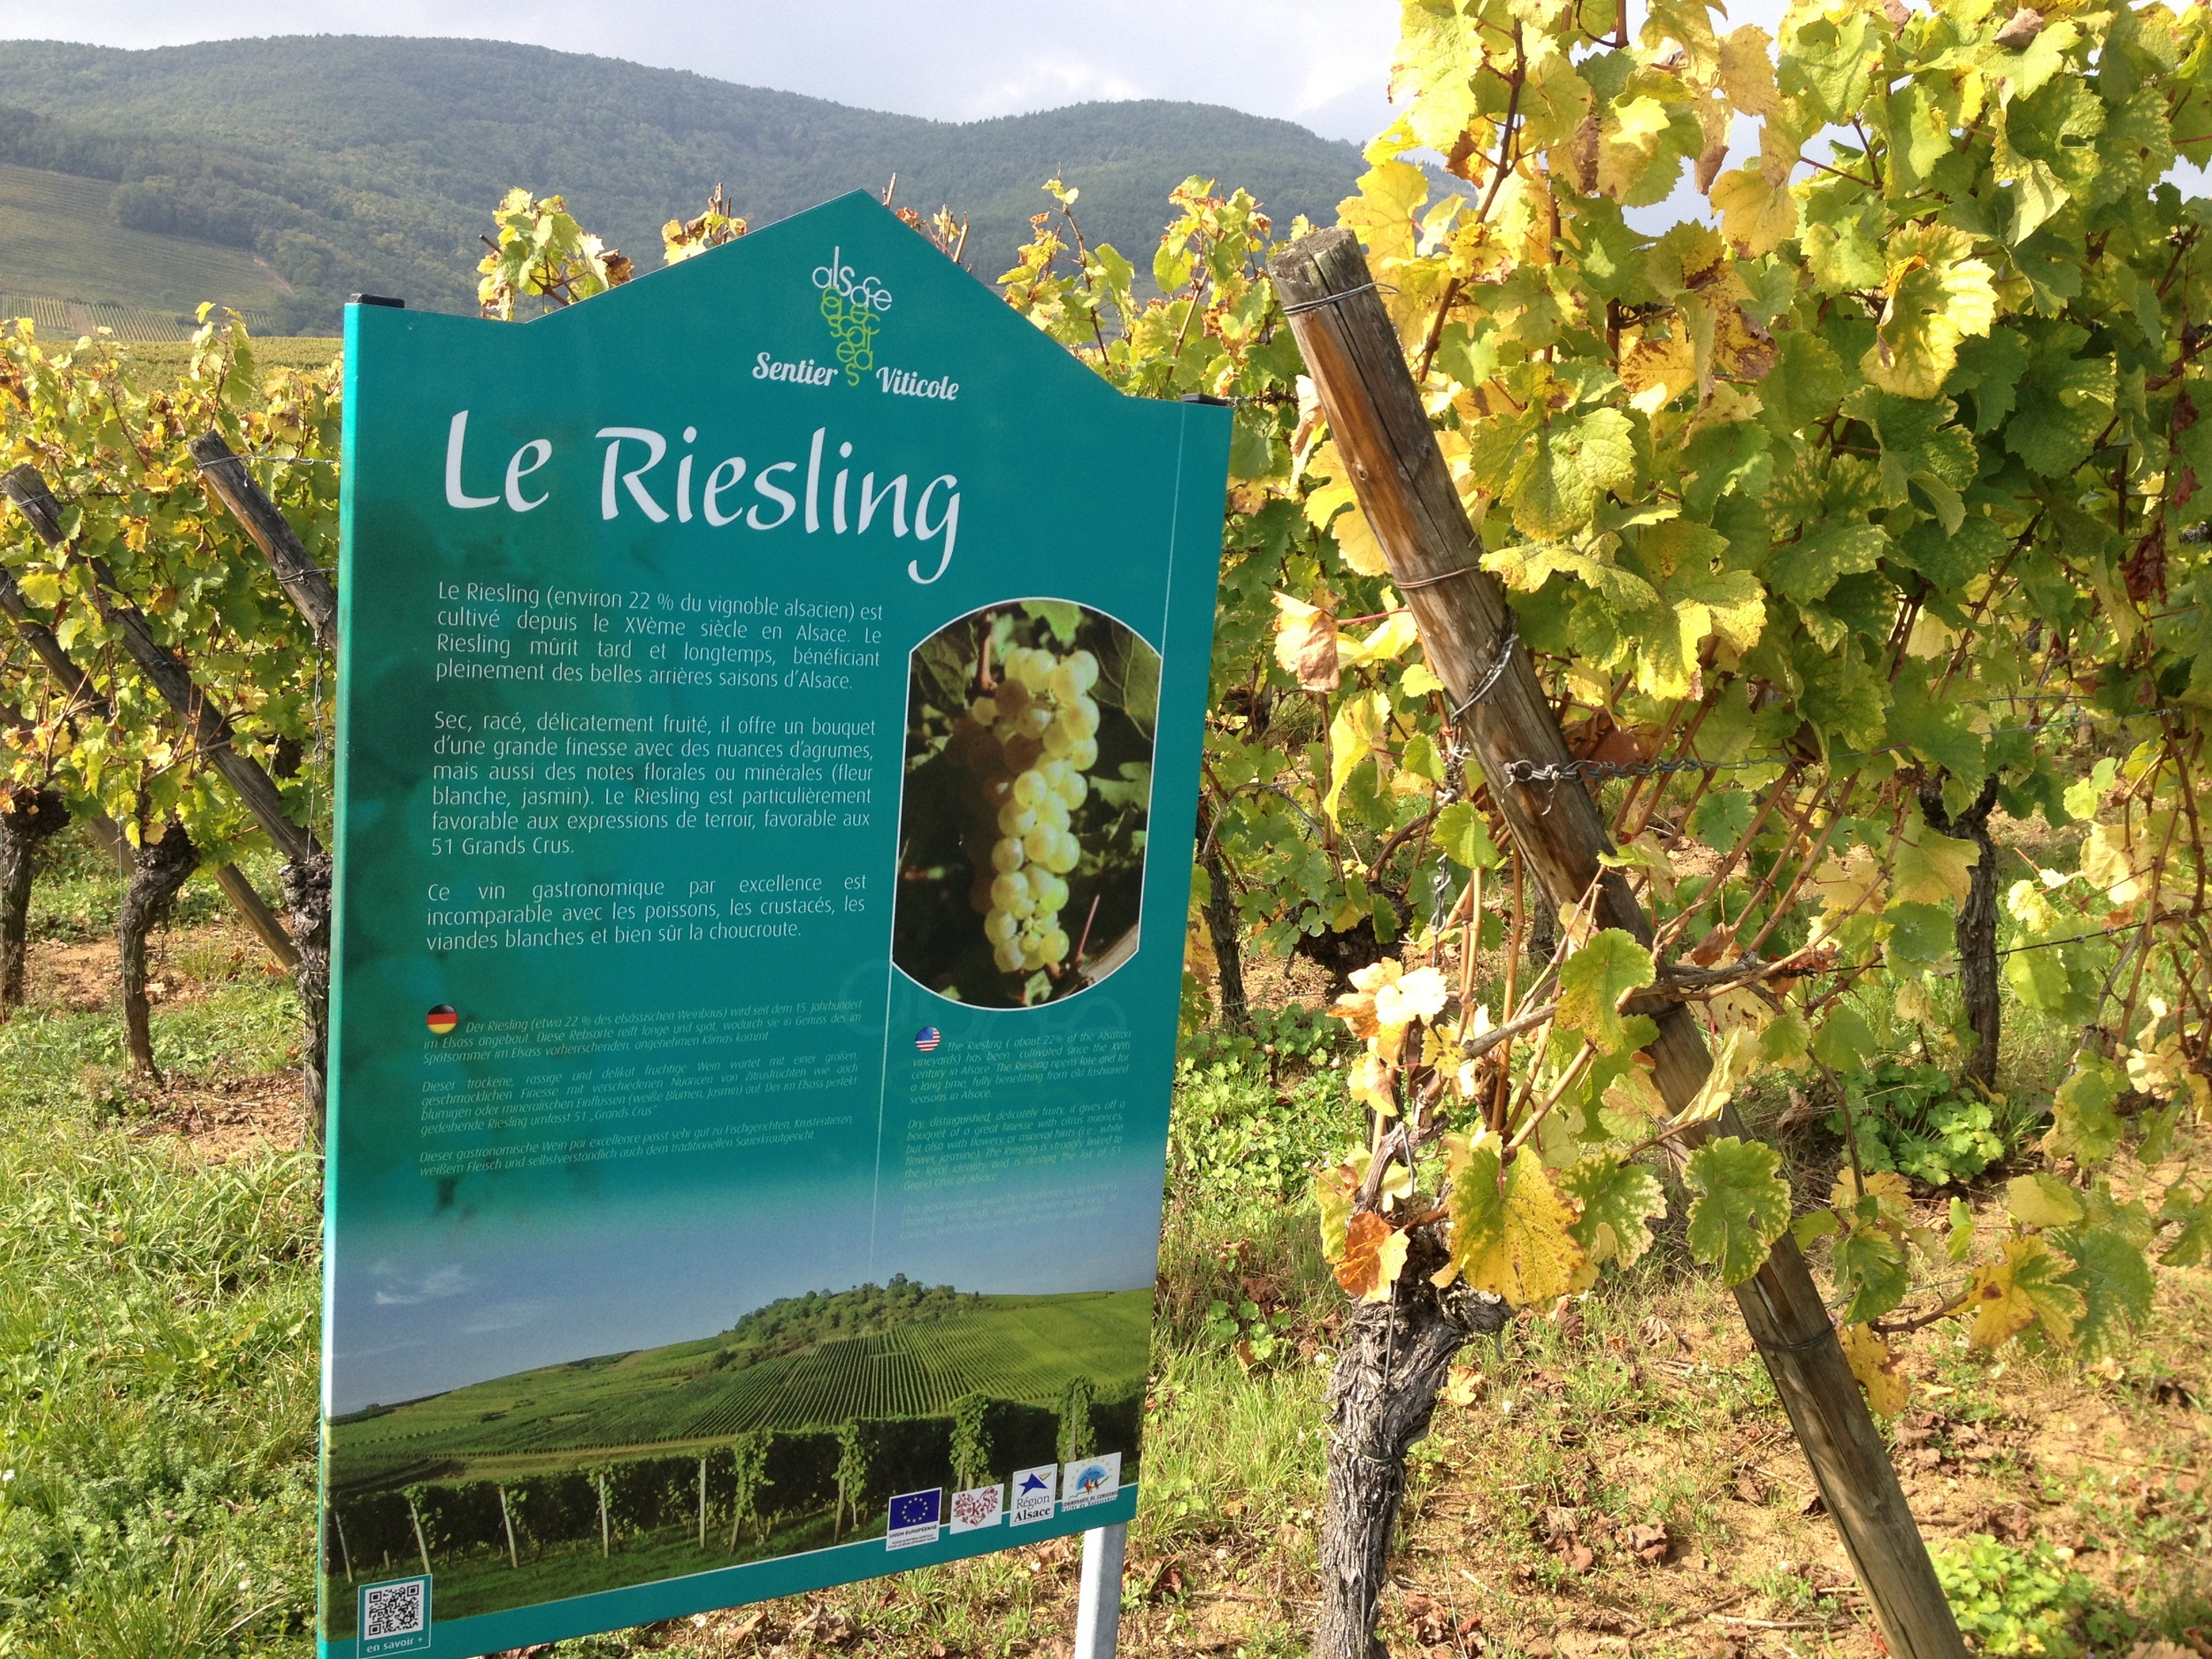 The Sentier Viticole  (Wine Route in French) signs inform visitors about types of grapes and the production process. Photo: Bruny Nieves